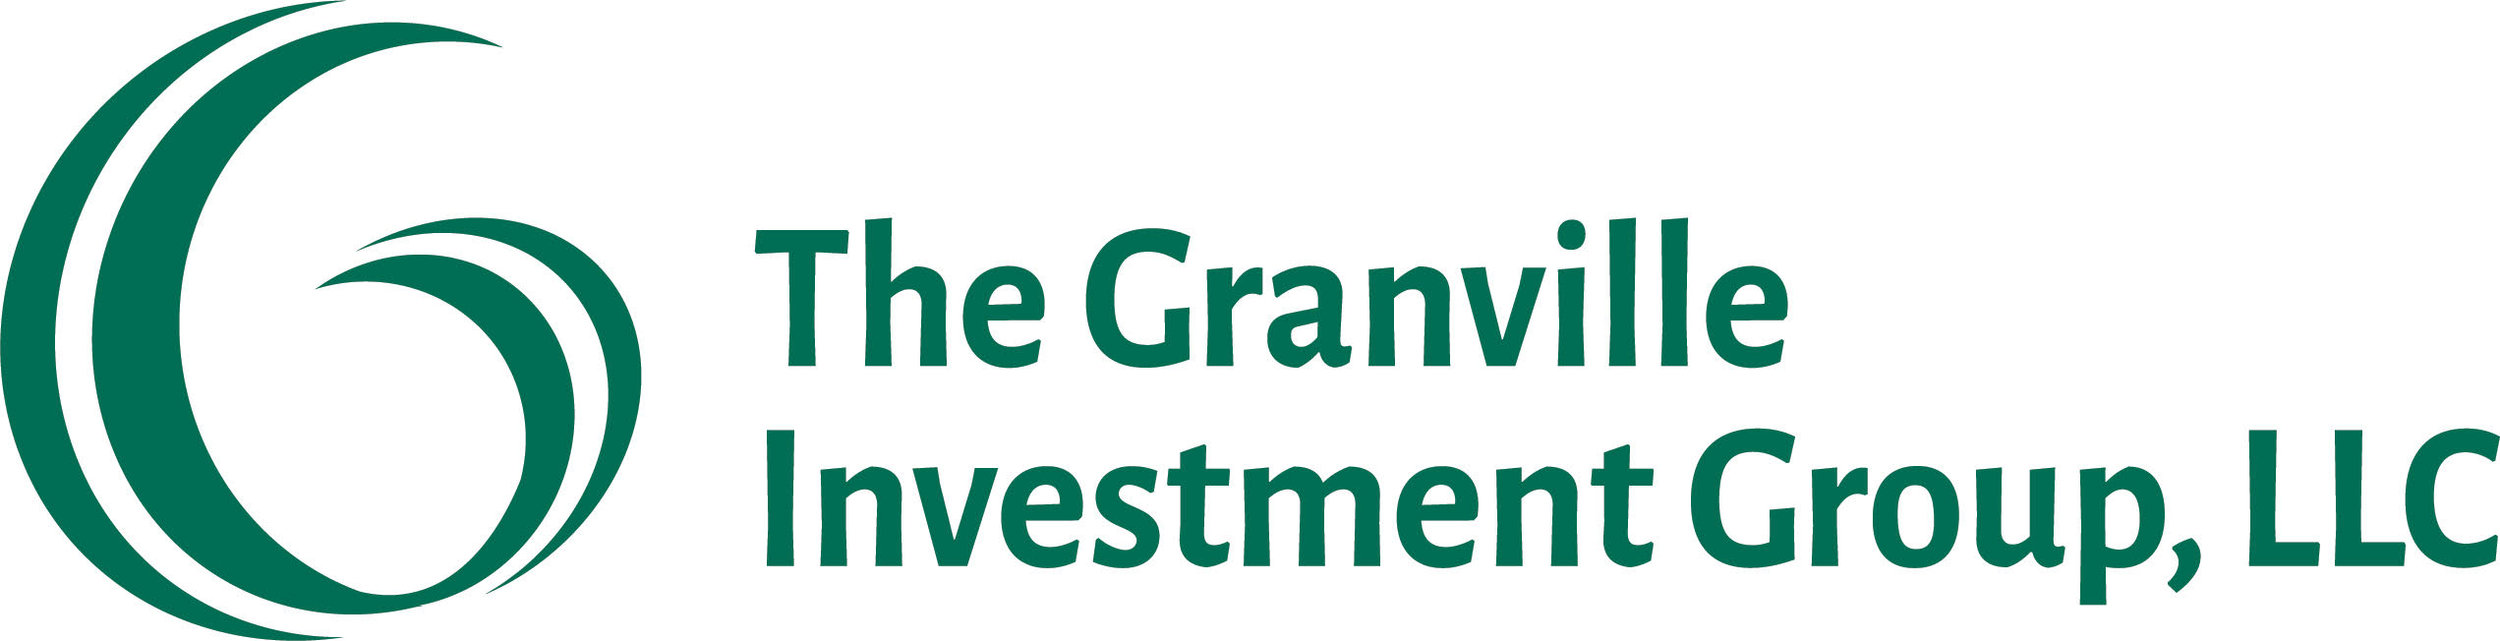 The Granville Investment Group